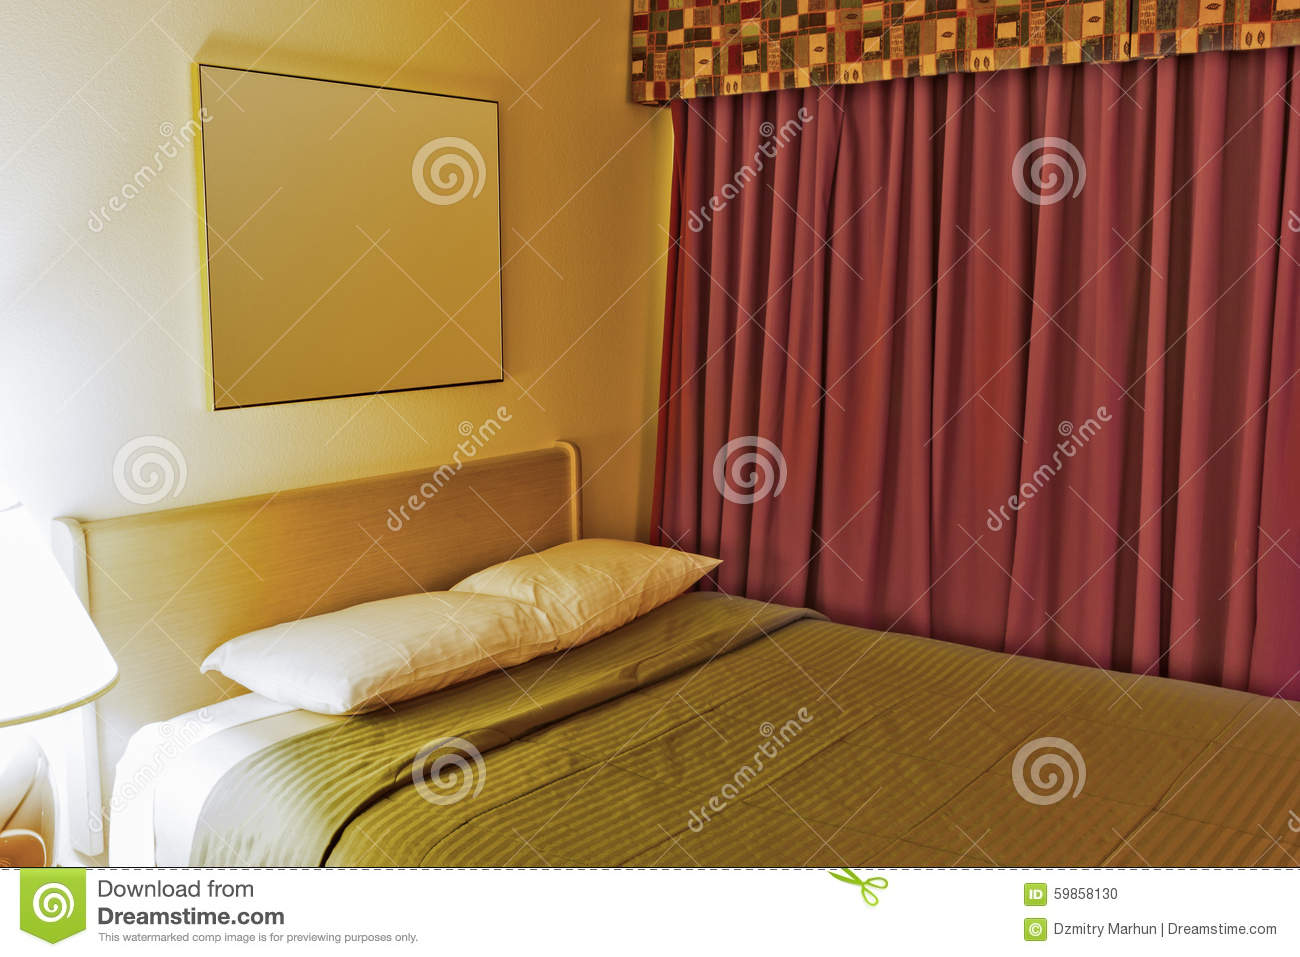 Contemporary Hotel Bedroom Royalty Free Stock Image - Image: 1103416